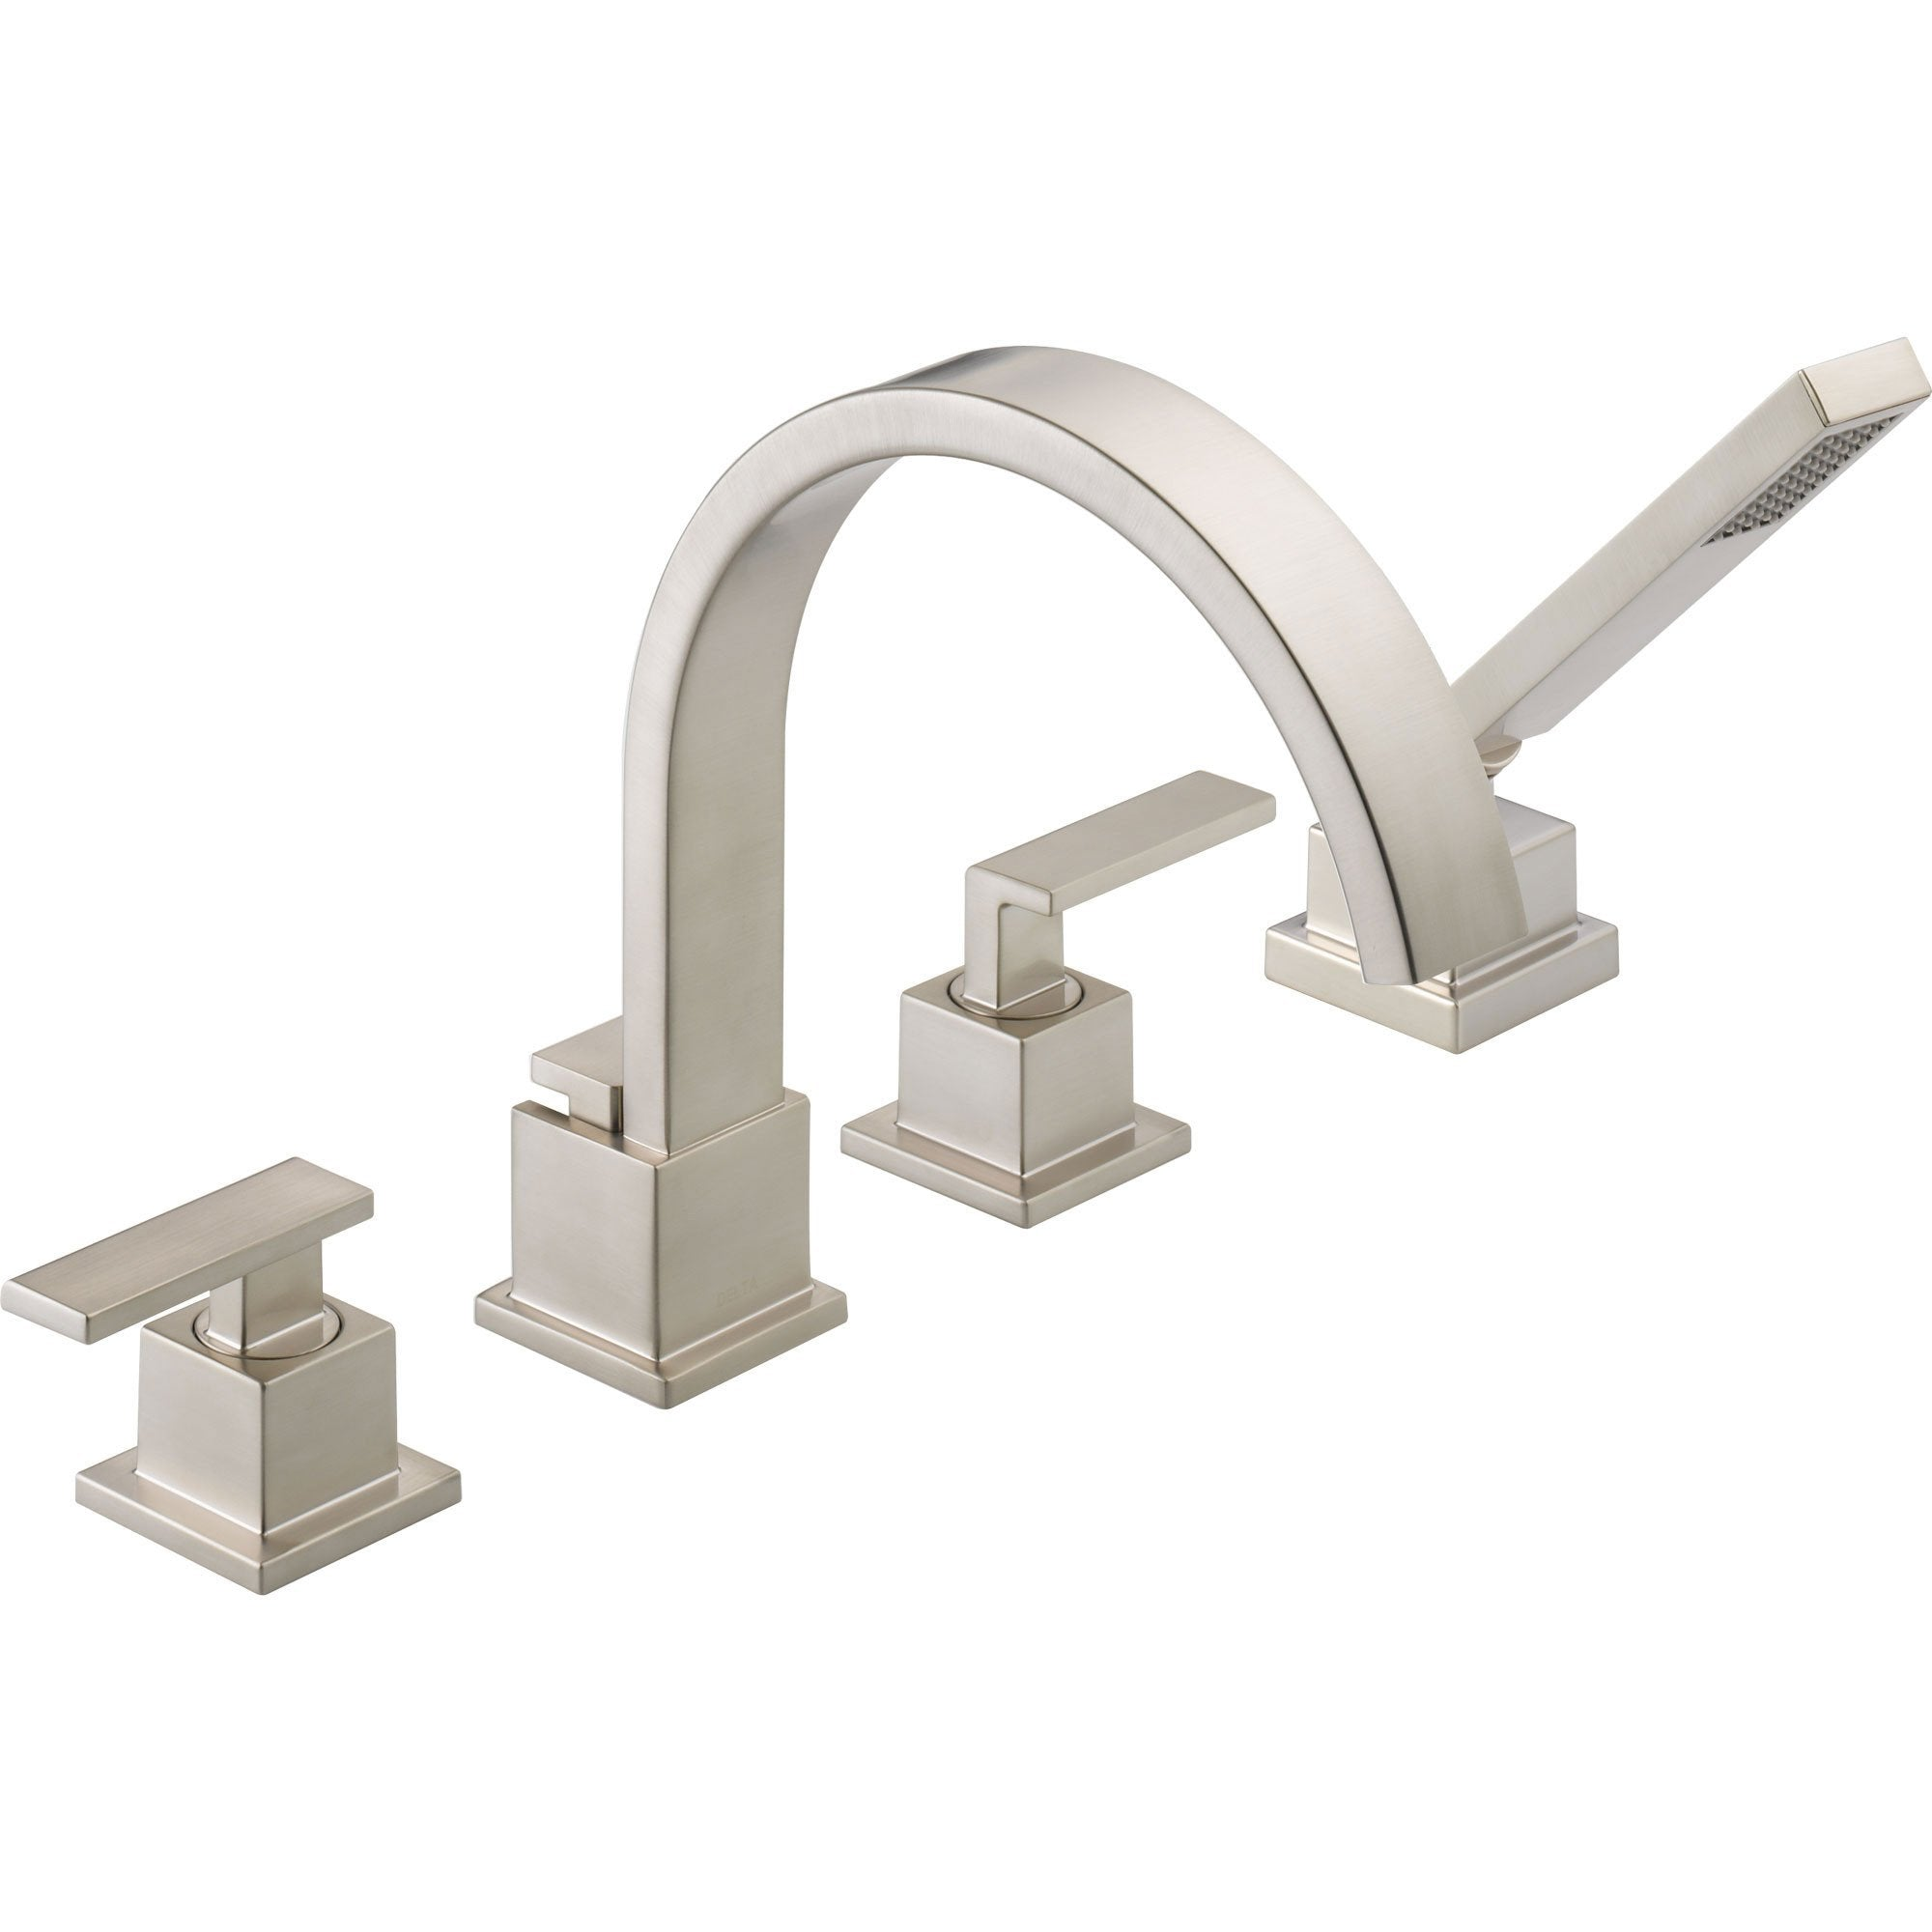 Delta Vero Stainless Steel Finish Roman Tub Faucet Trim with Handshower 521912